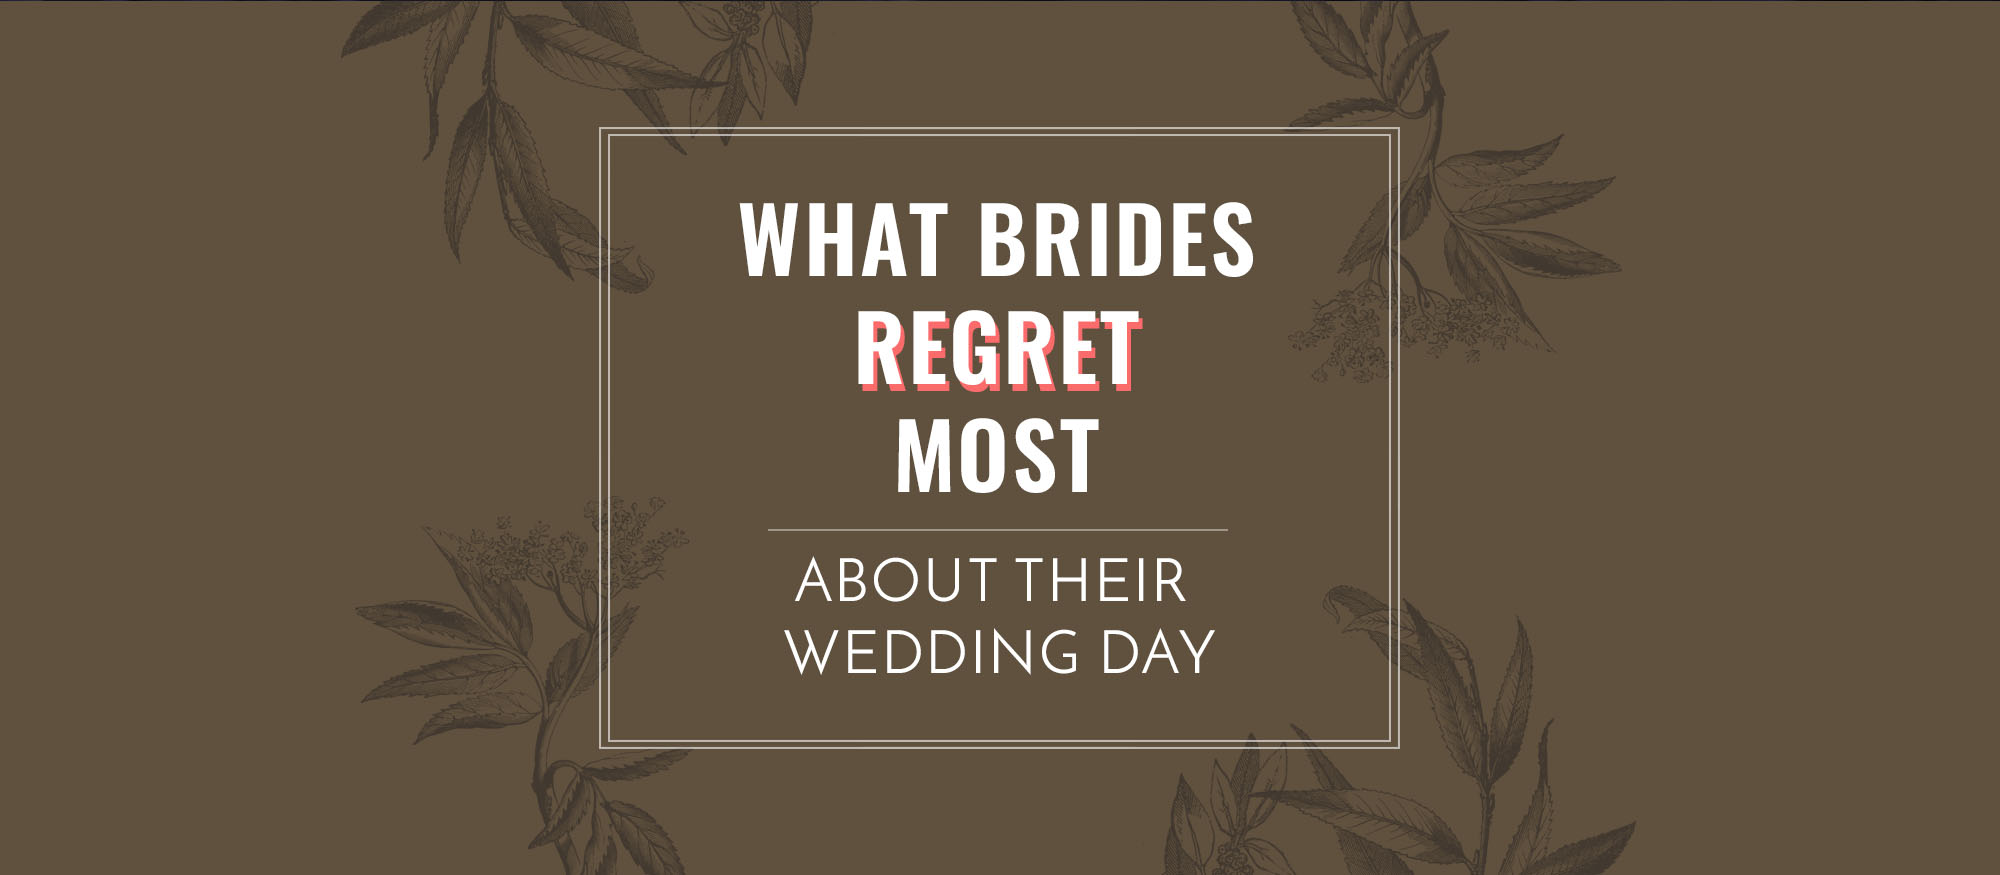 What Brides Regret Most about their wedding day